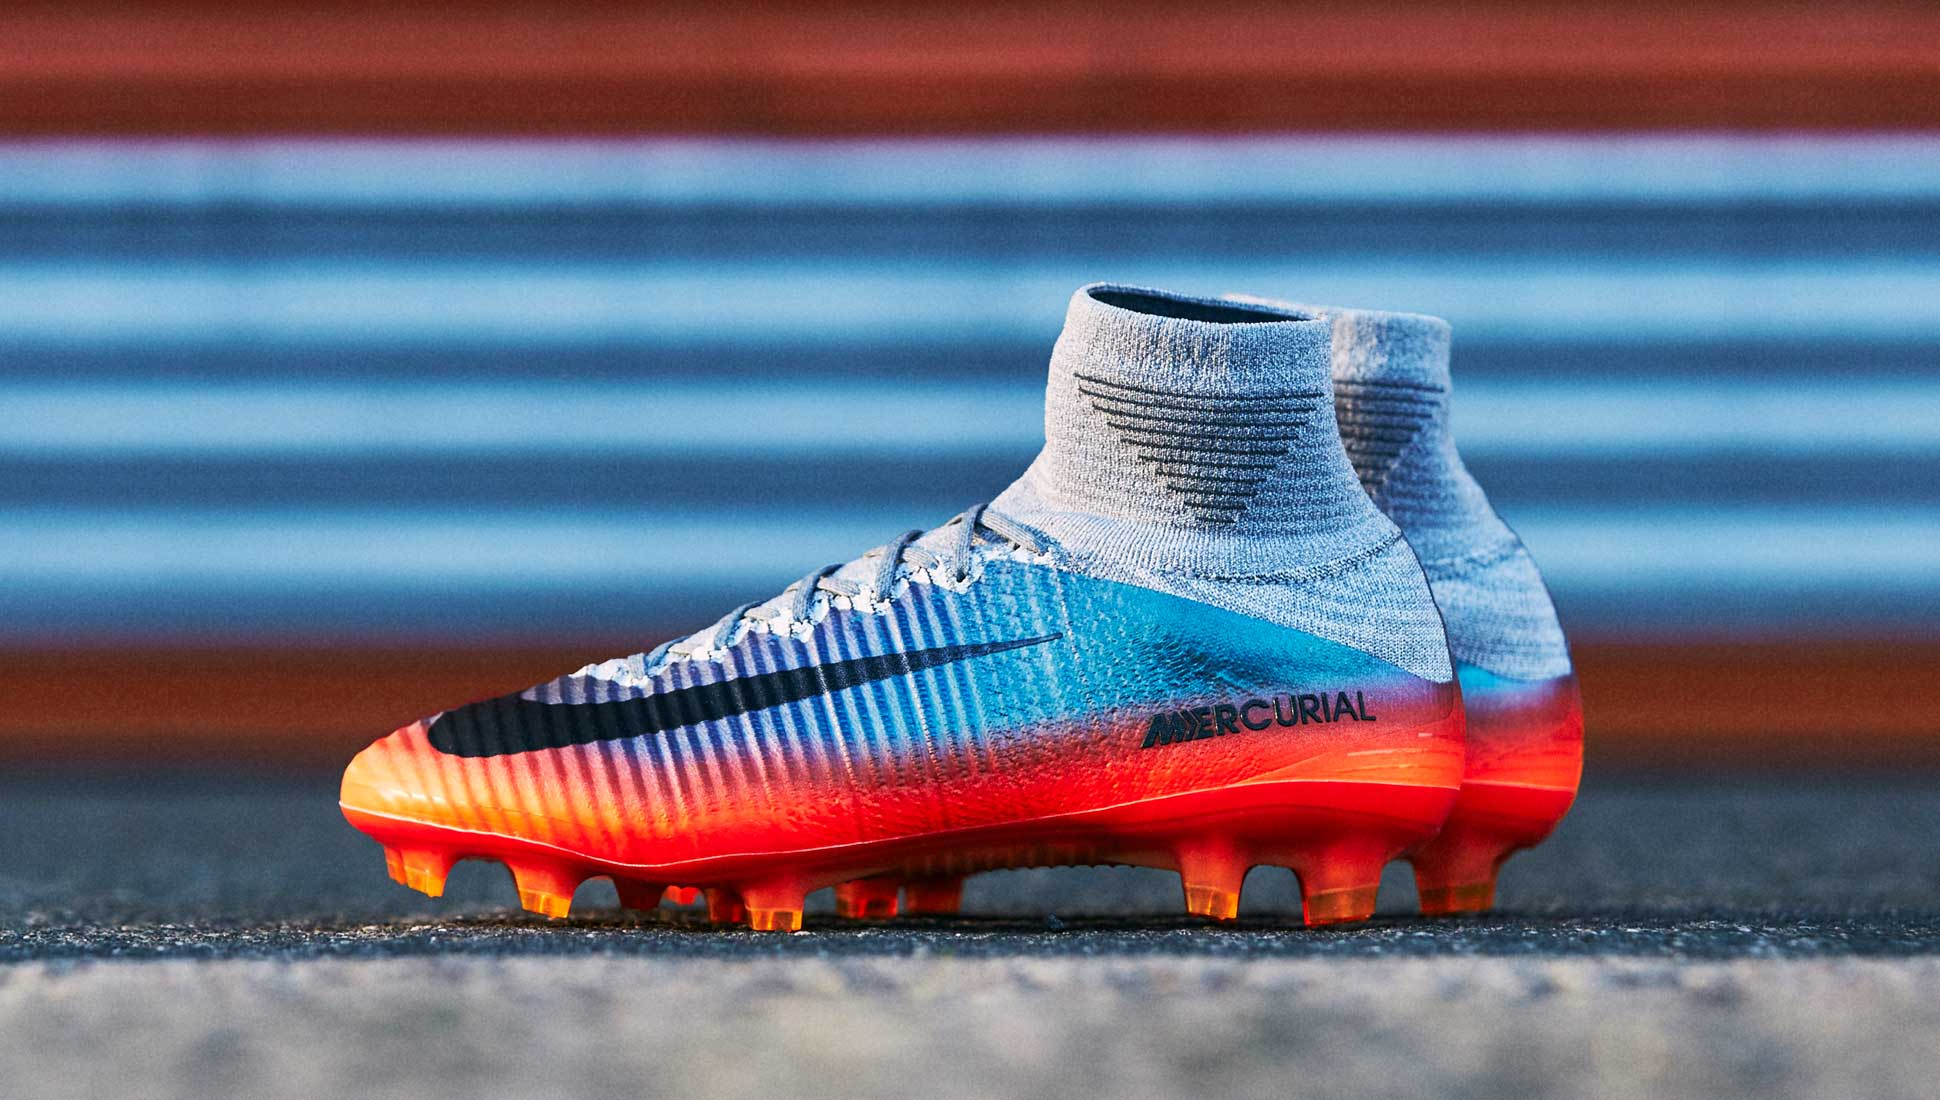 237fe37182a A Retrospective Look at the CR7 Mercurial Chapter Series - SoccerBible.